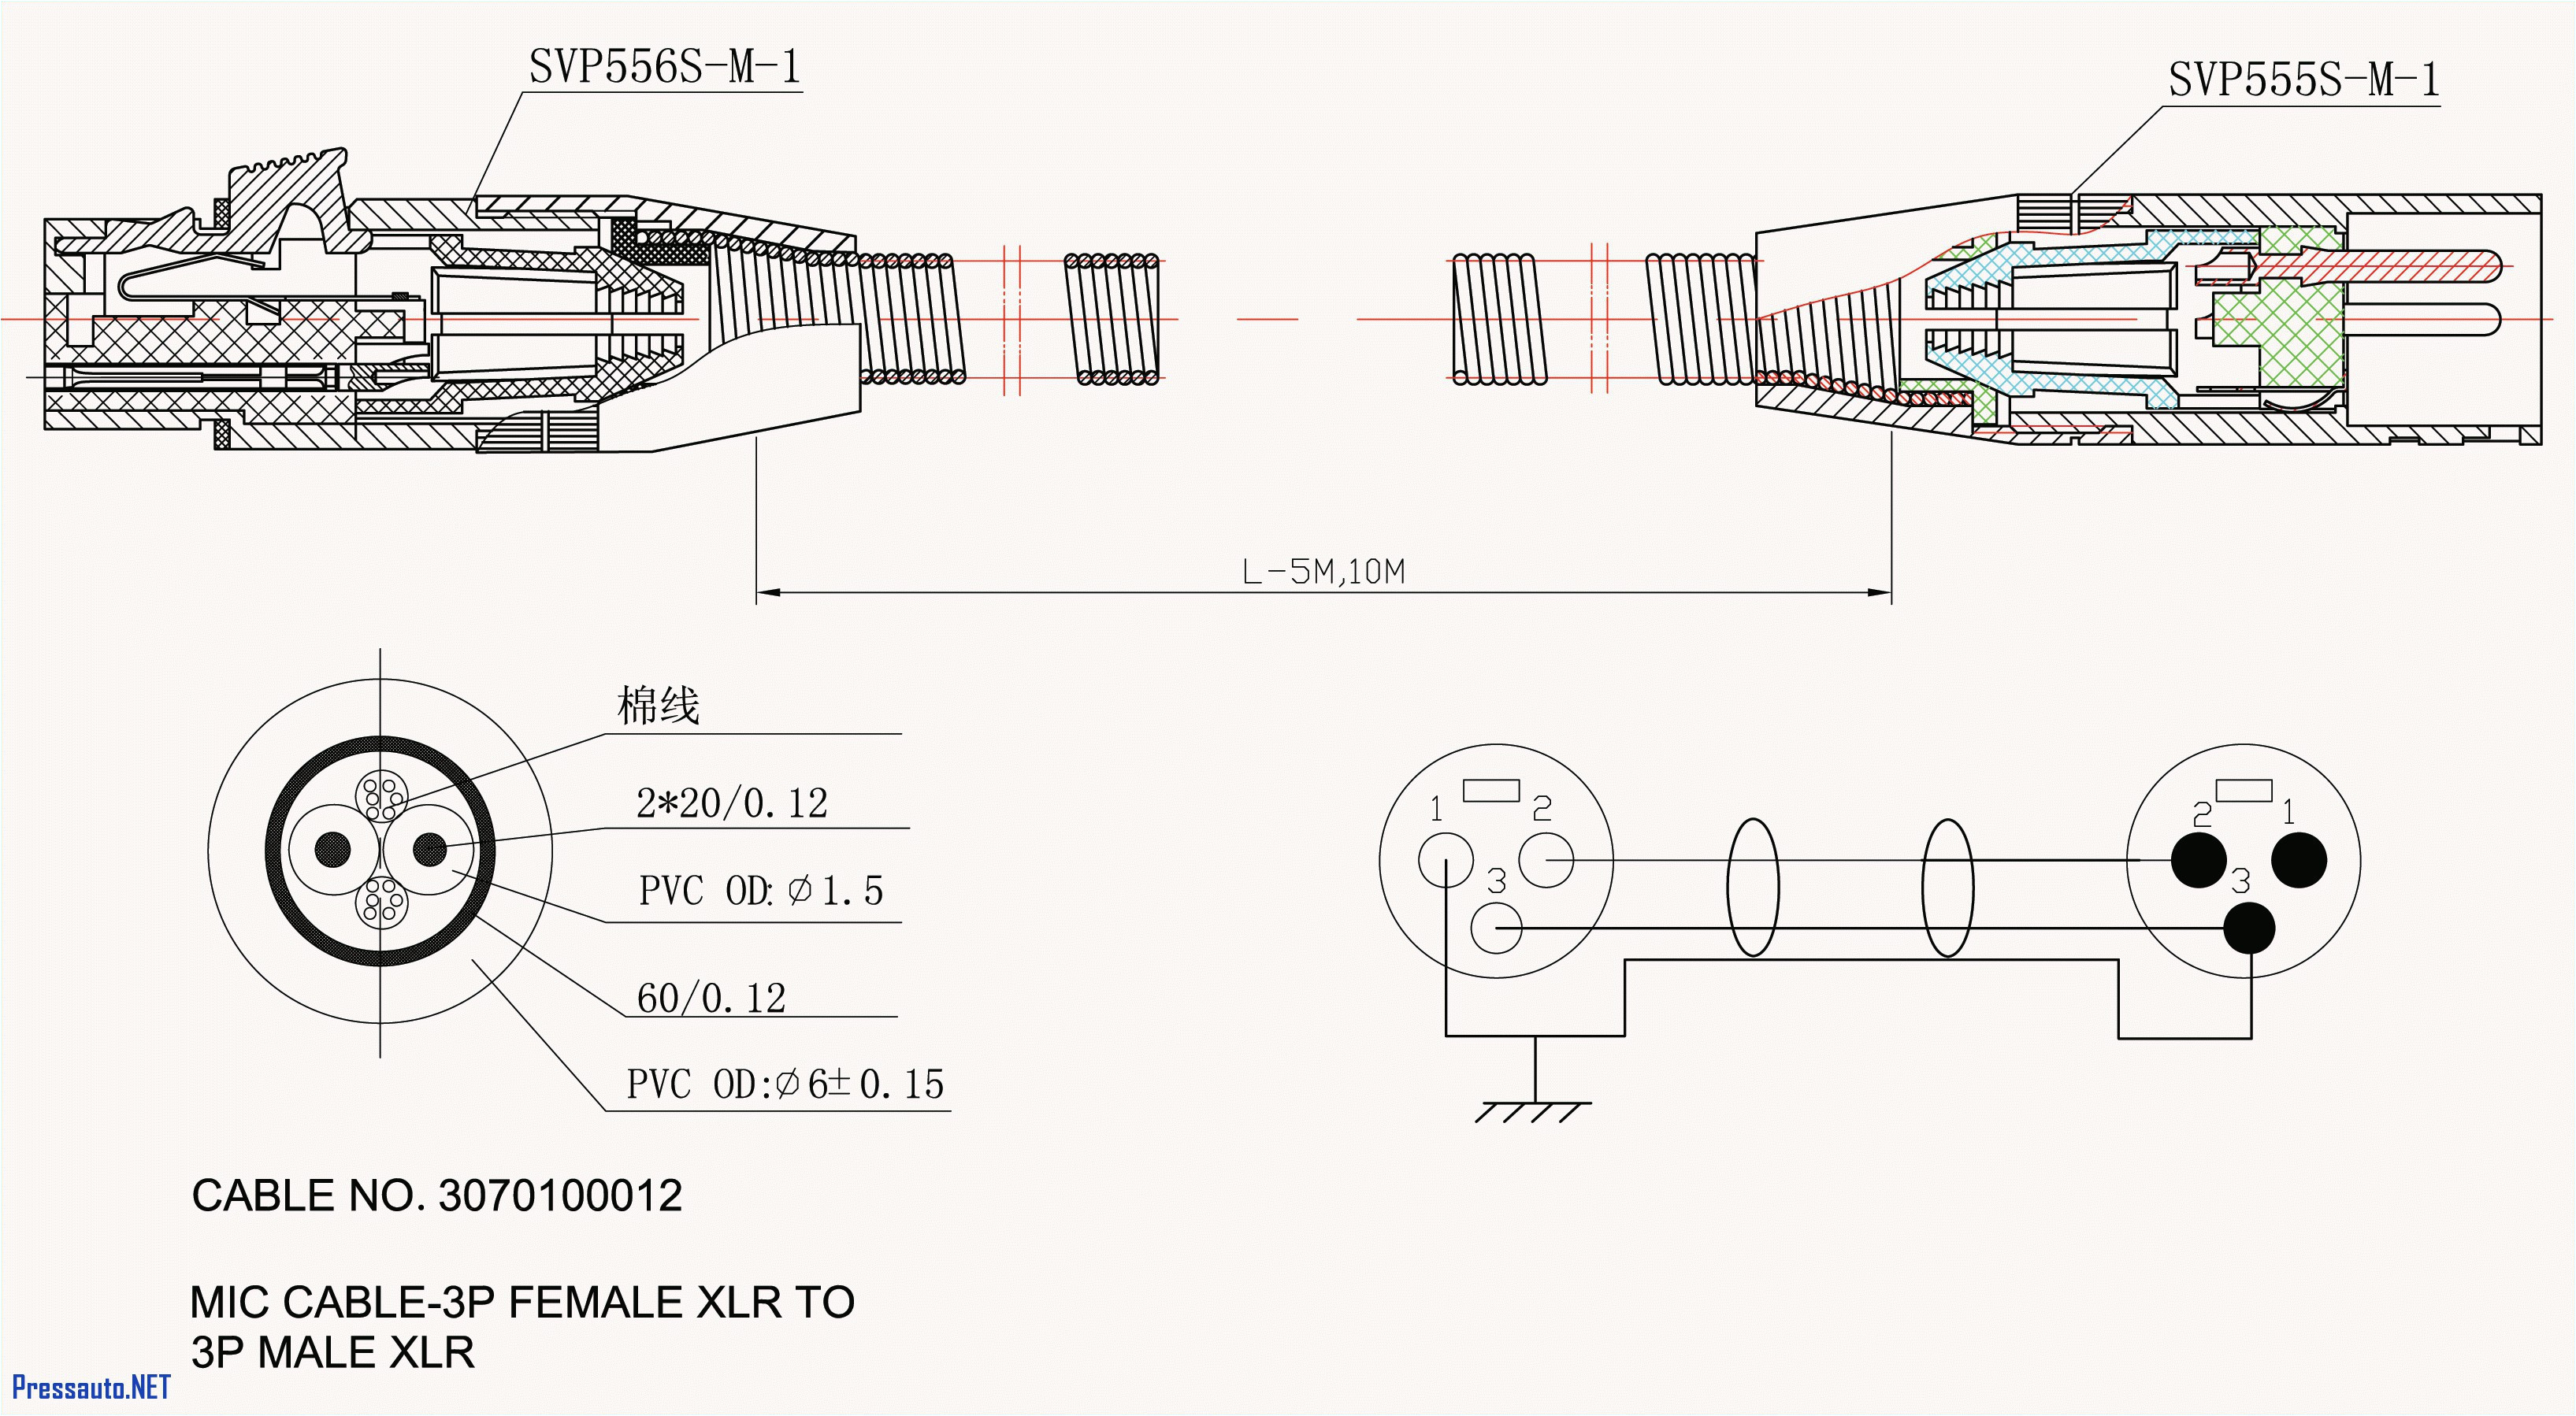 1992 Jeep Wrangler Wiring Diagram 0 5 Mustang Tach Wiring Wiring Diagram Value